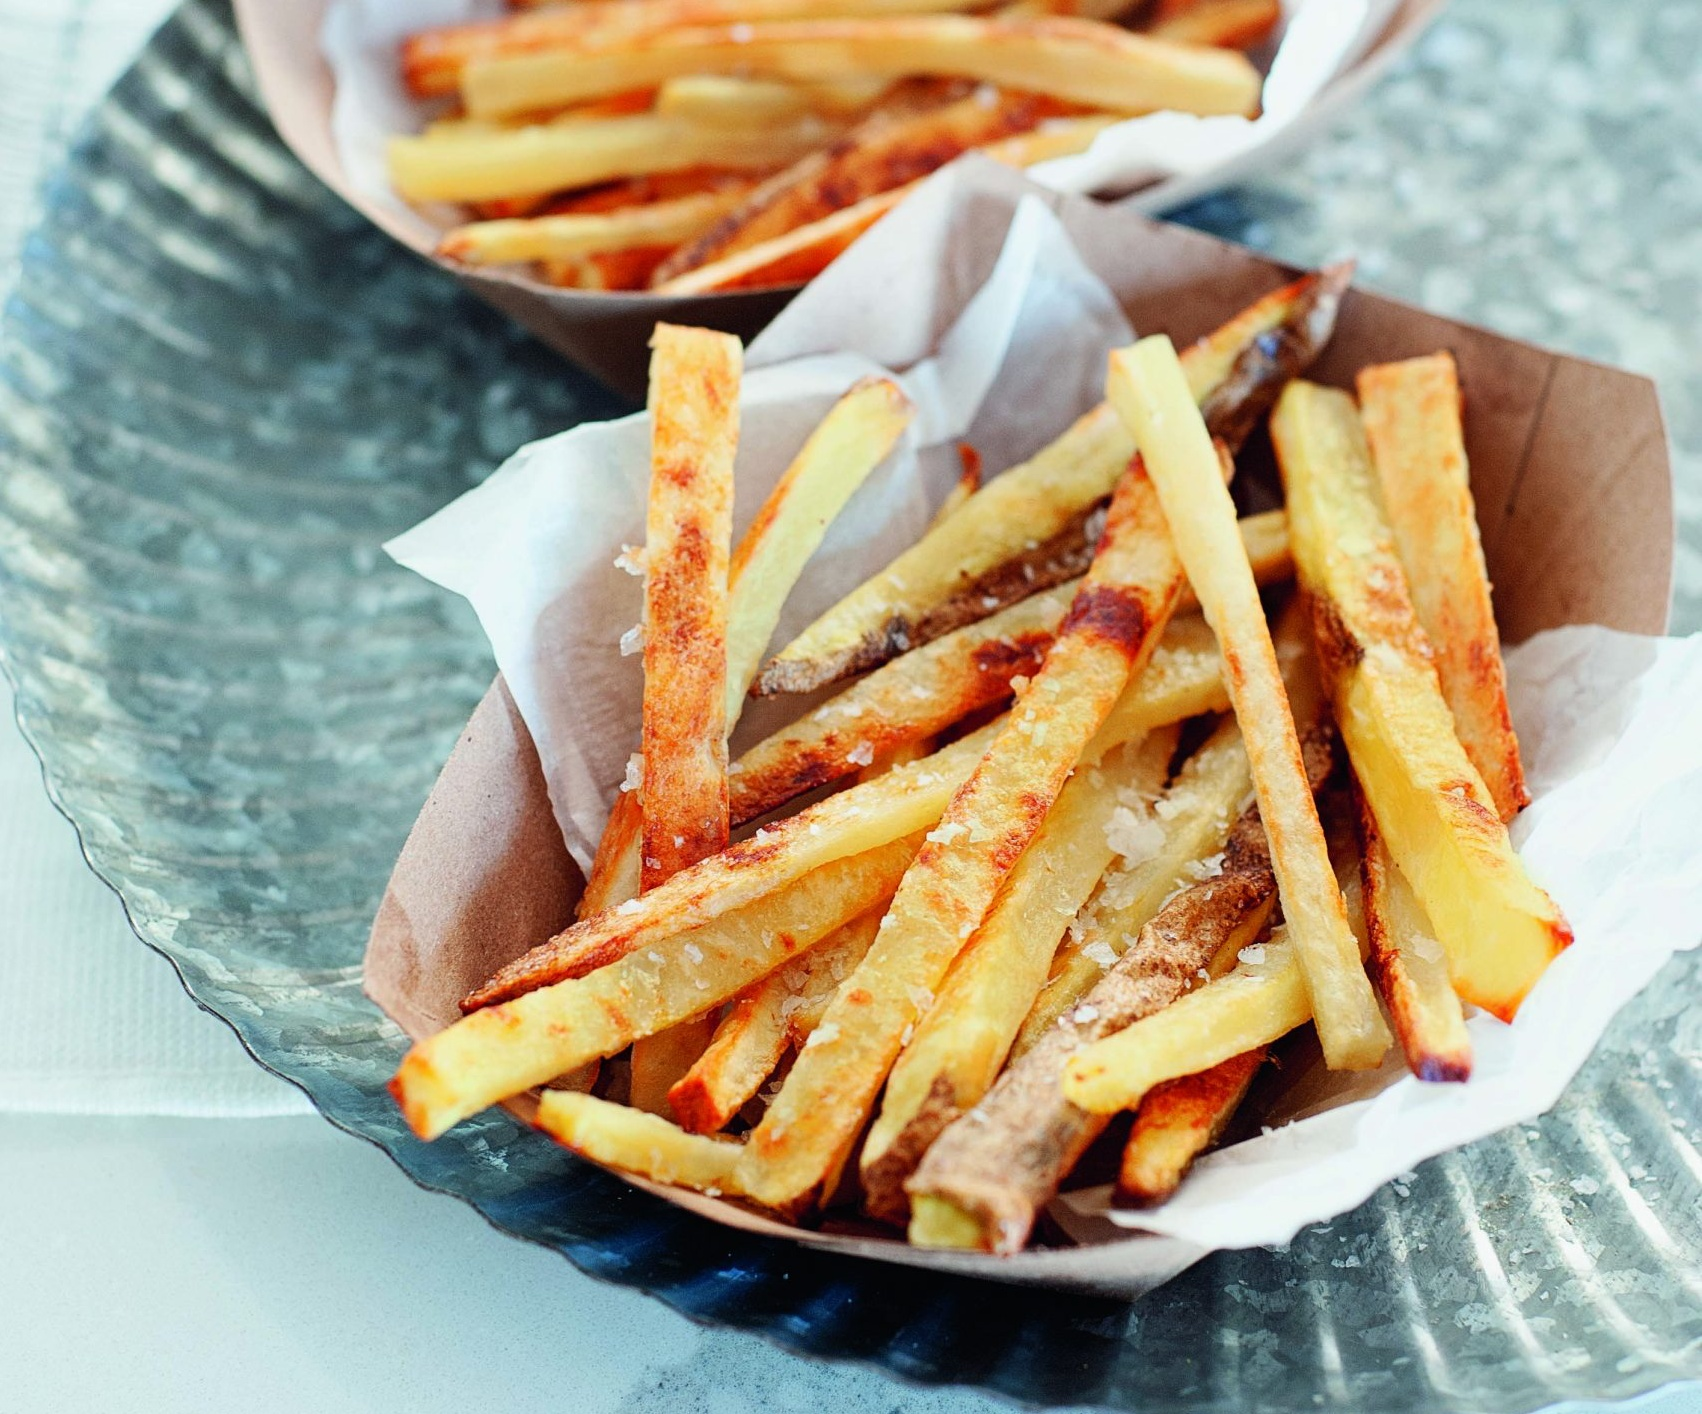 Crispy Baked Garlic French Fries [Vegan]